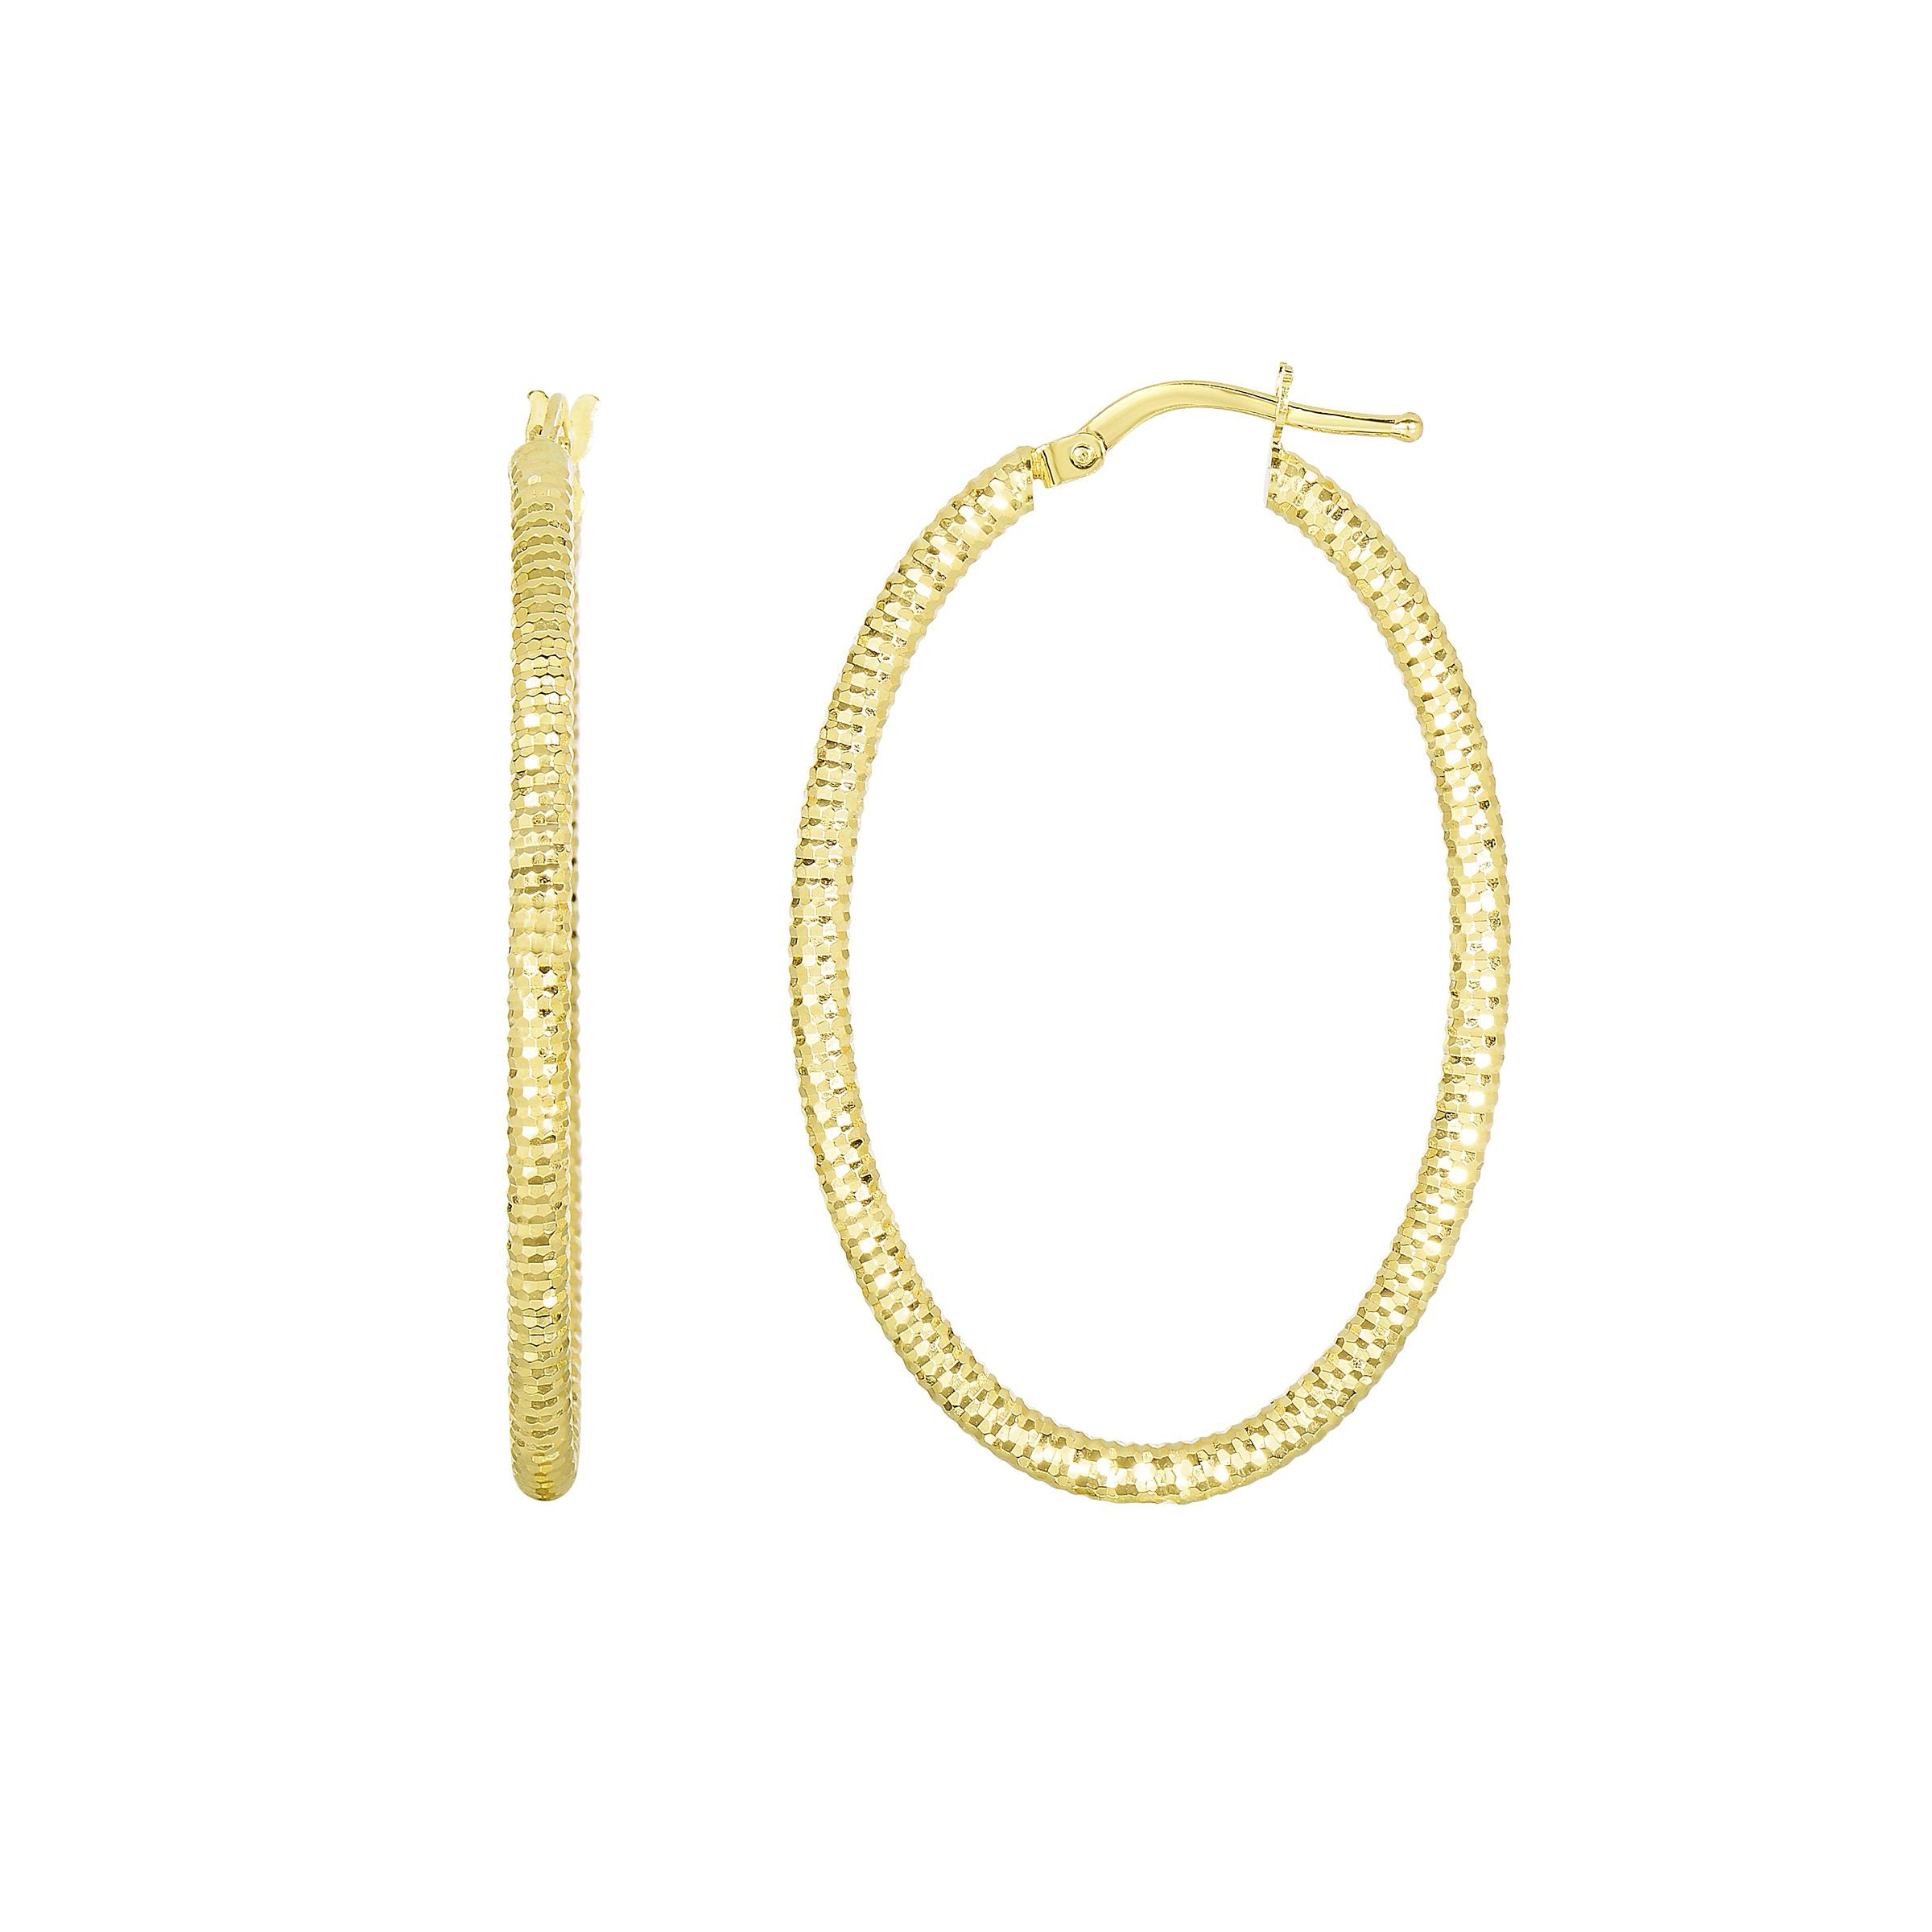 Diamond Cut Oval Hoop Earrings, 14K Yellow Gold